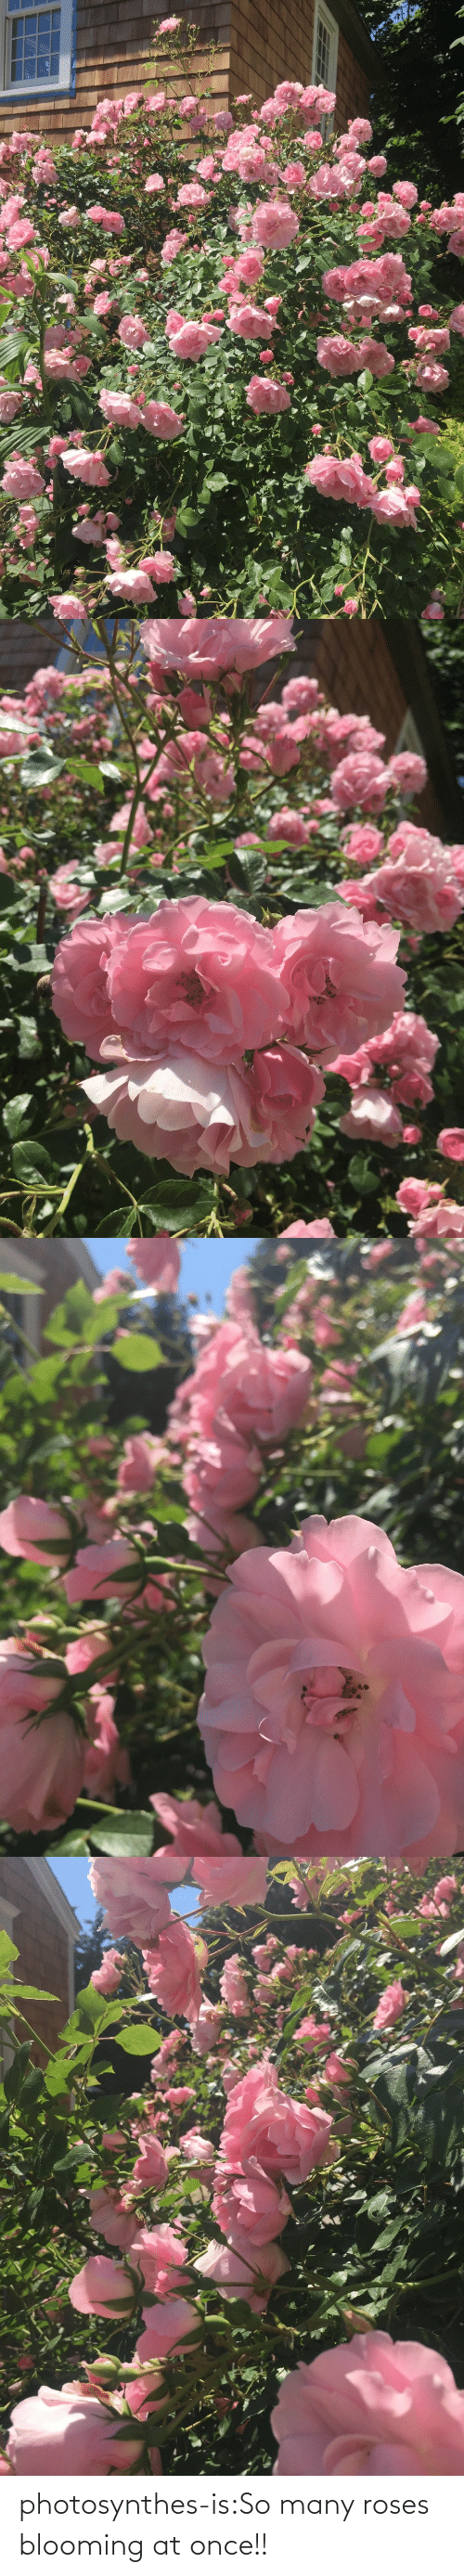 roses: photosynthes-is:So many roses blooming at once!!